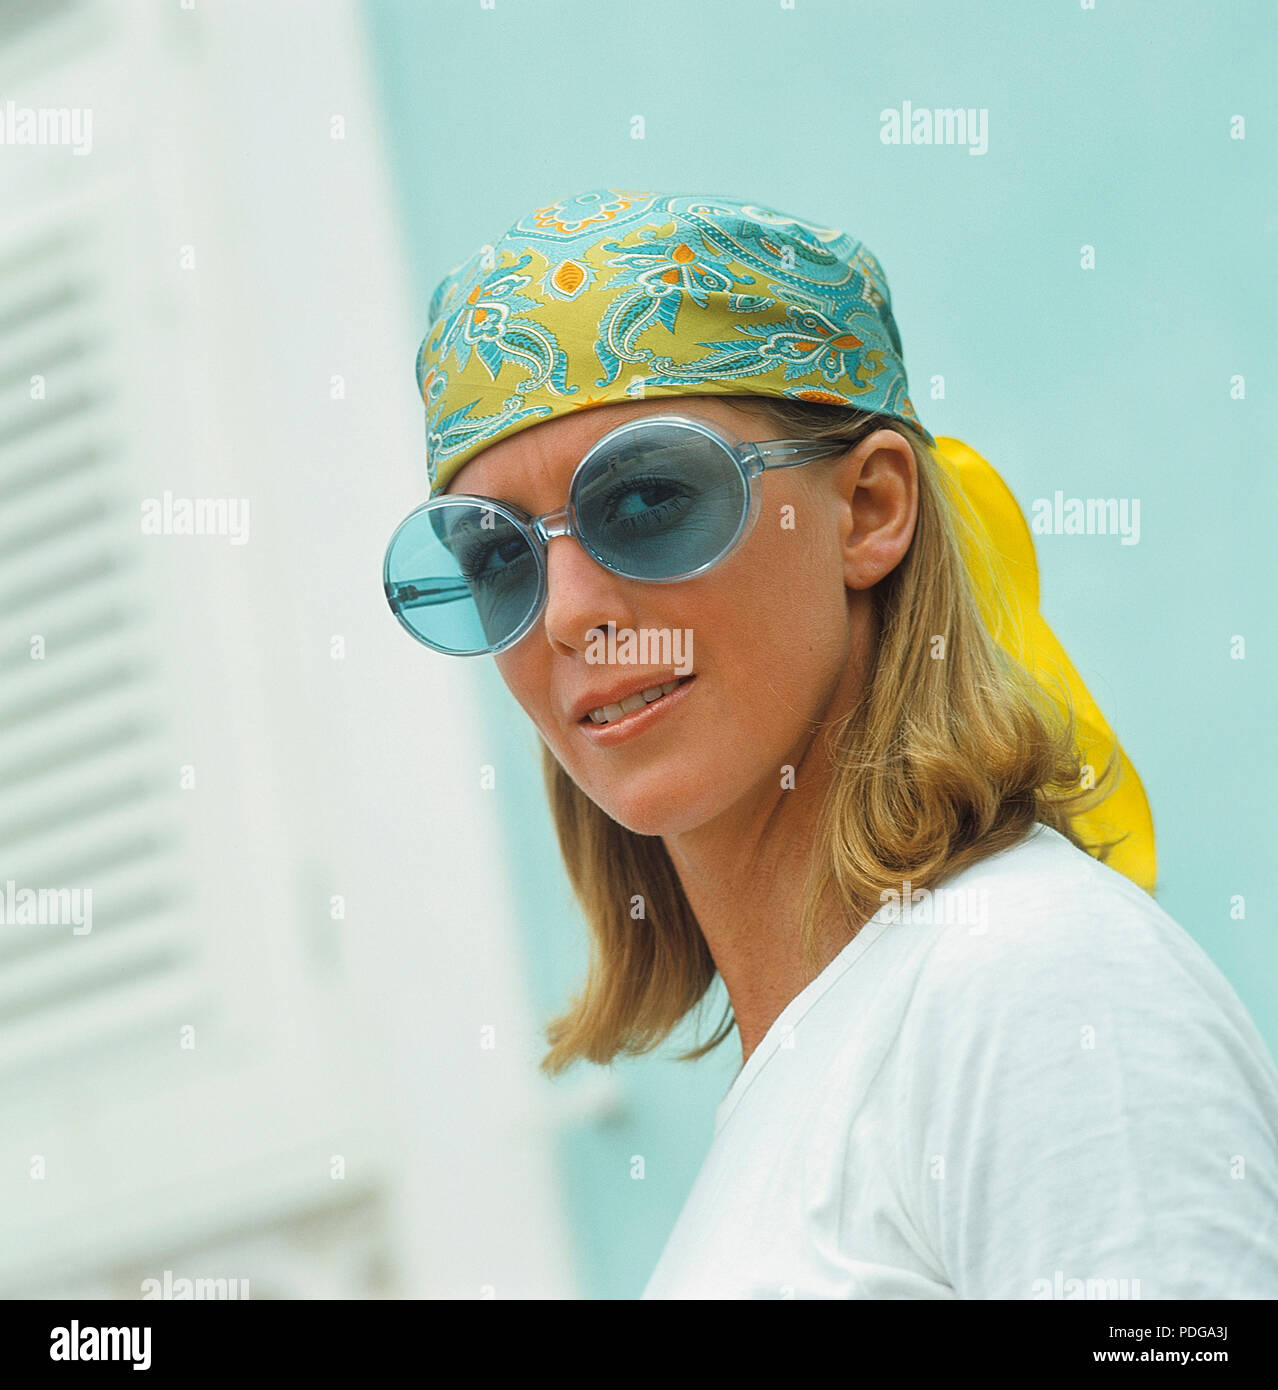 1960s glasses. Summer of 69. The young female fashion model is wearing this years model of sunglasses and accessories. 1969 ref CV25-8 - Stock Image